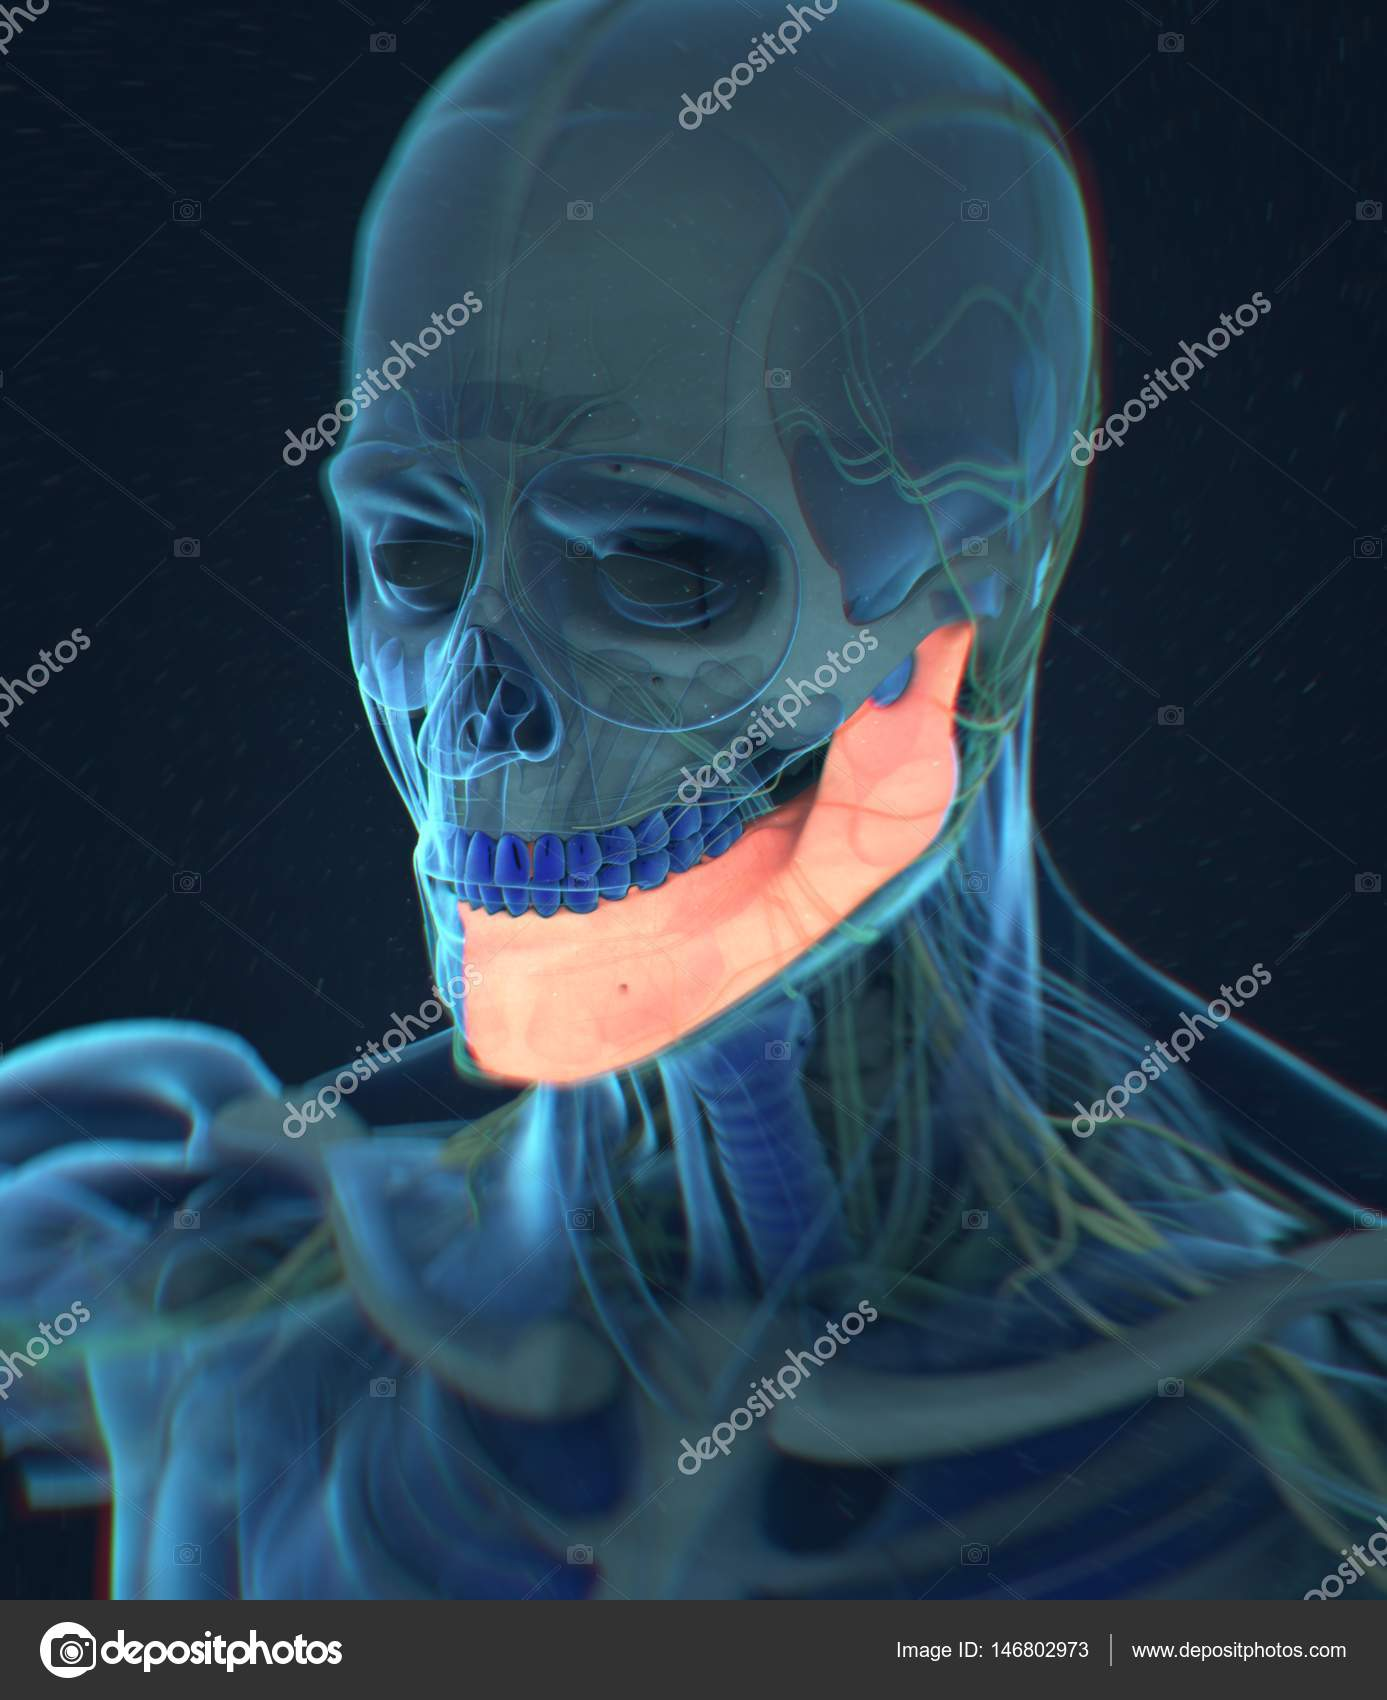 Human Jaw Anatomy Model Stock Photo Anatomyinsider 146802973